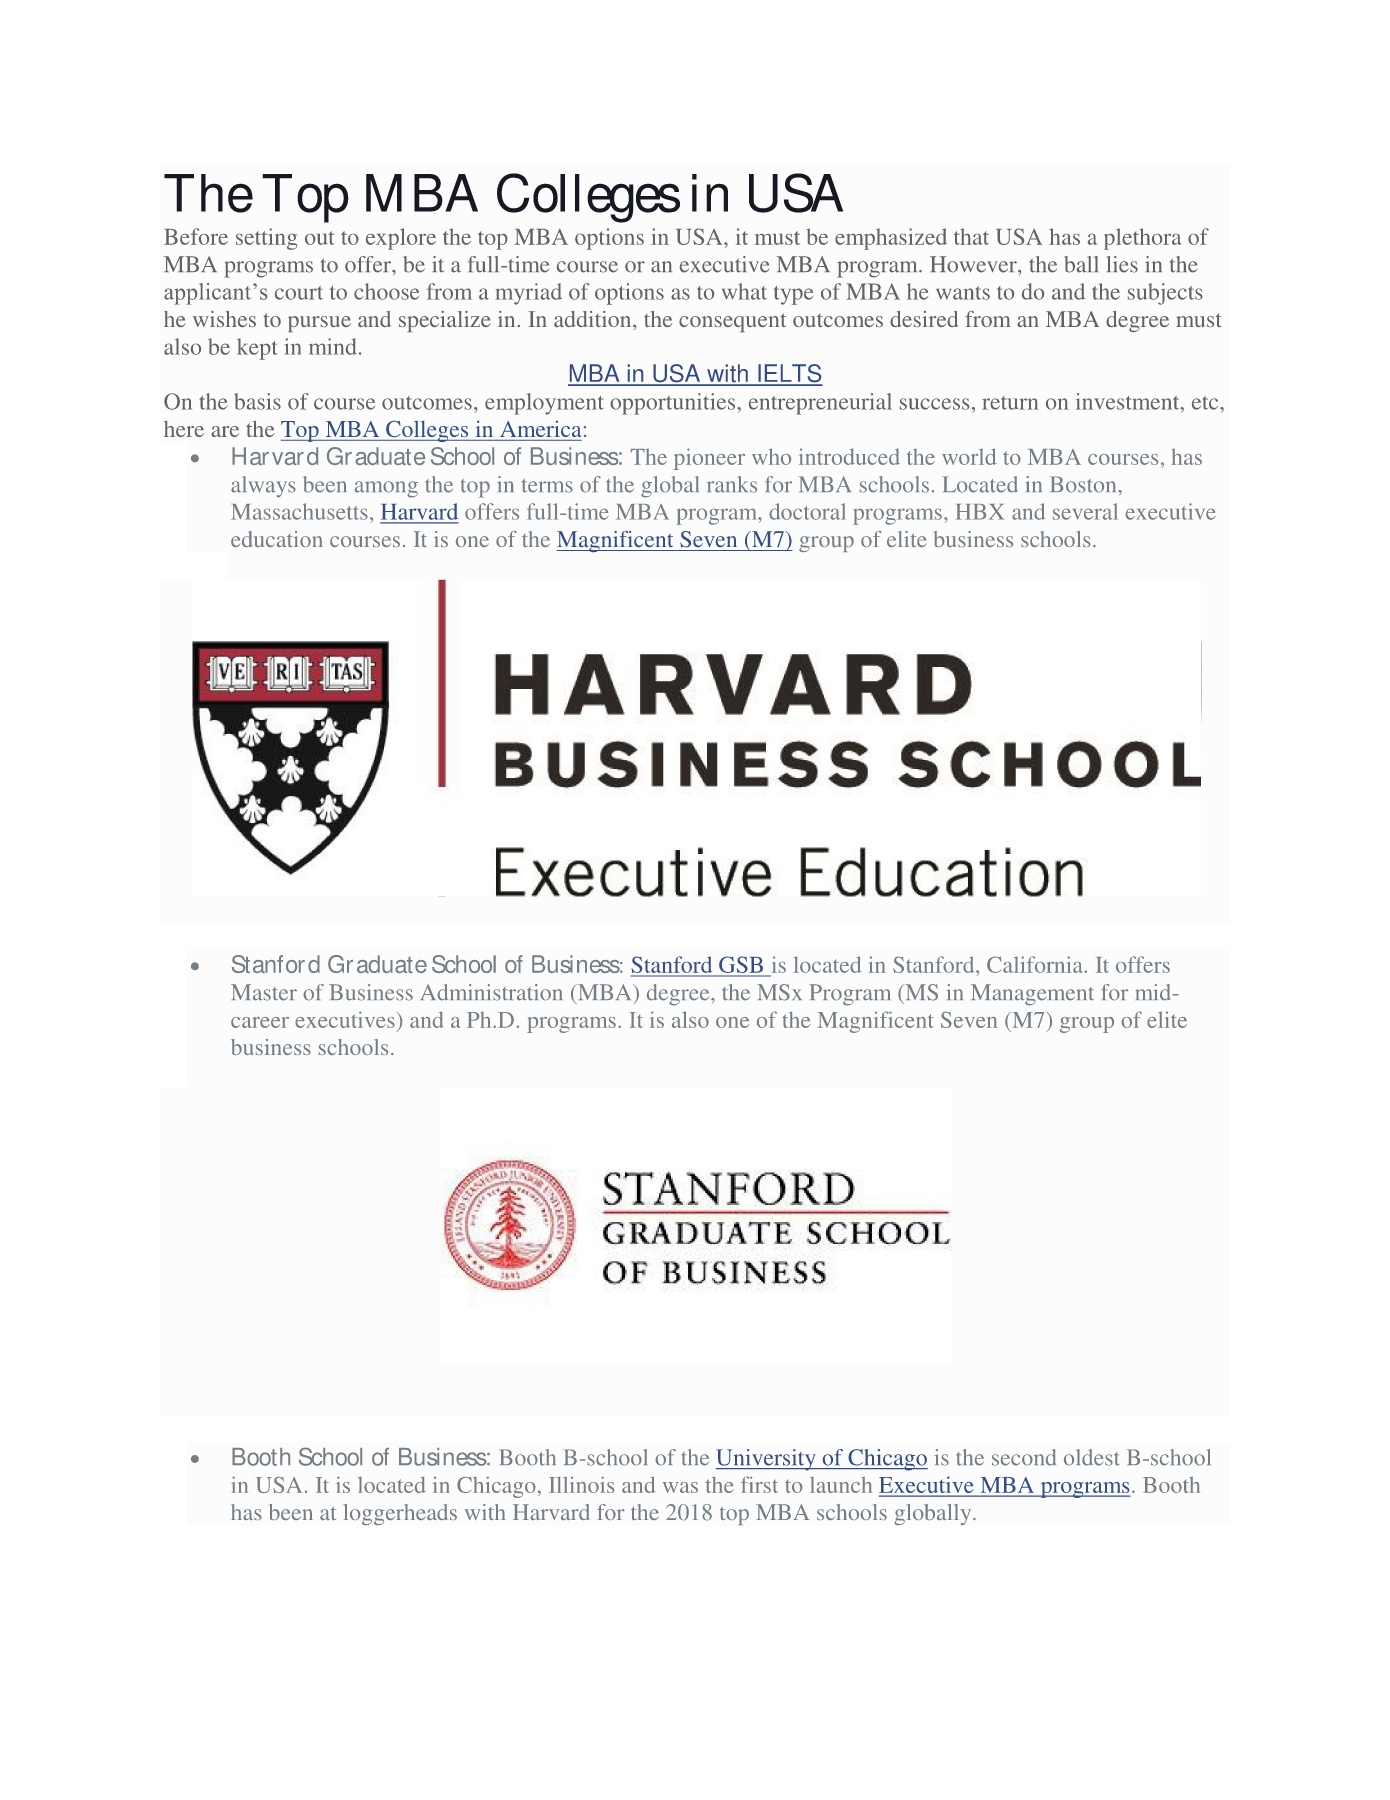 A Harvard University Guide To Executive >> Study Mba In Usa The Ultimate Guide To Top Mba Colleges Updated